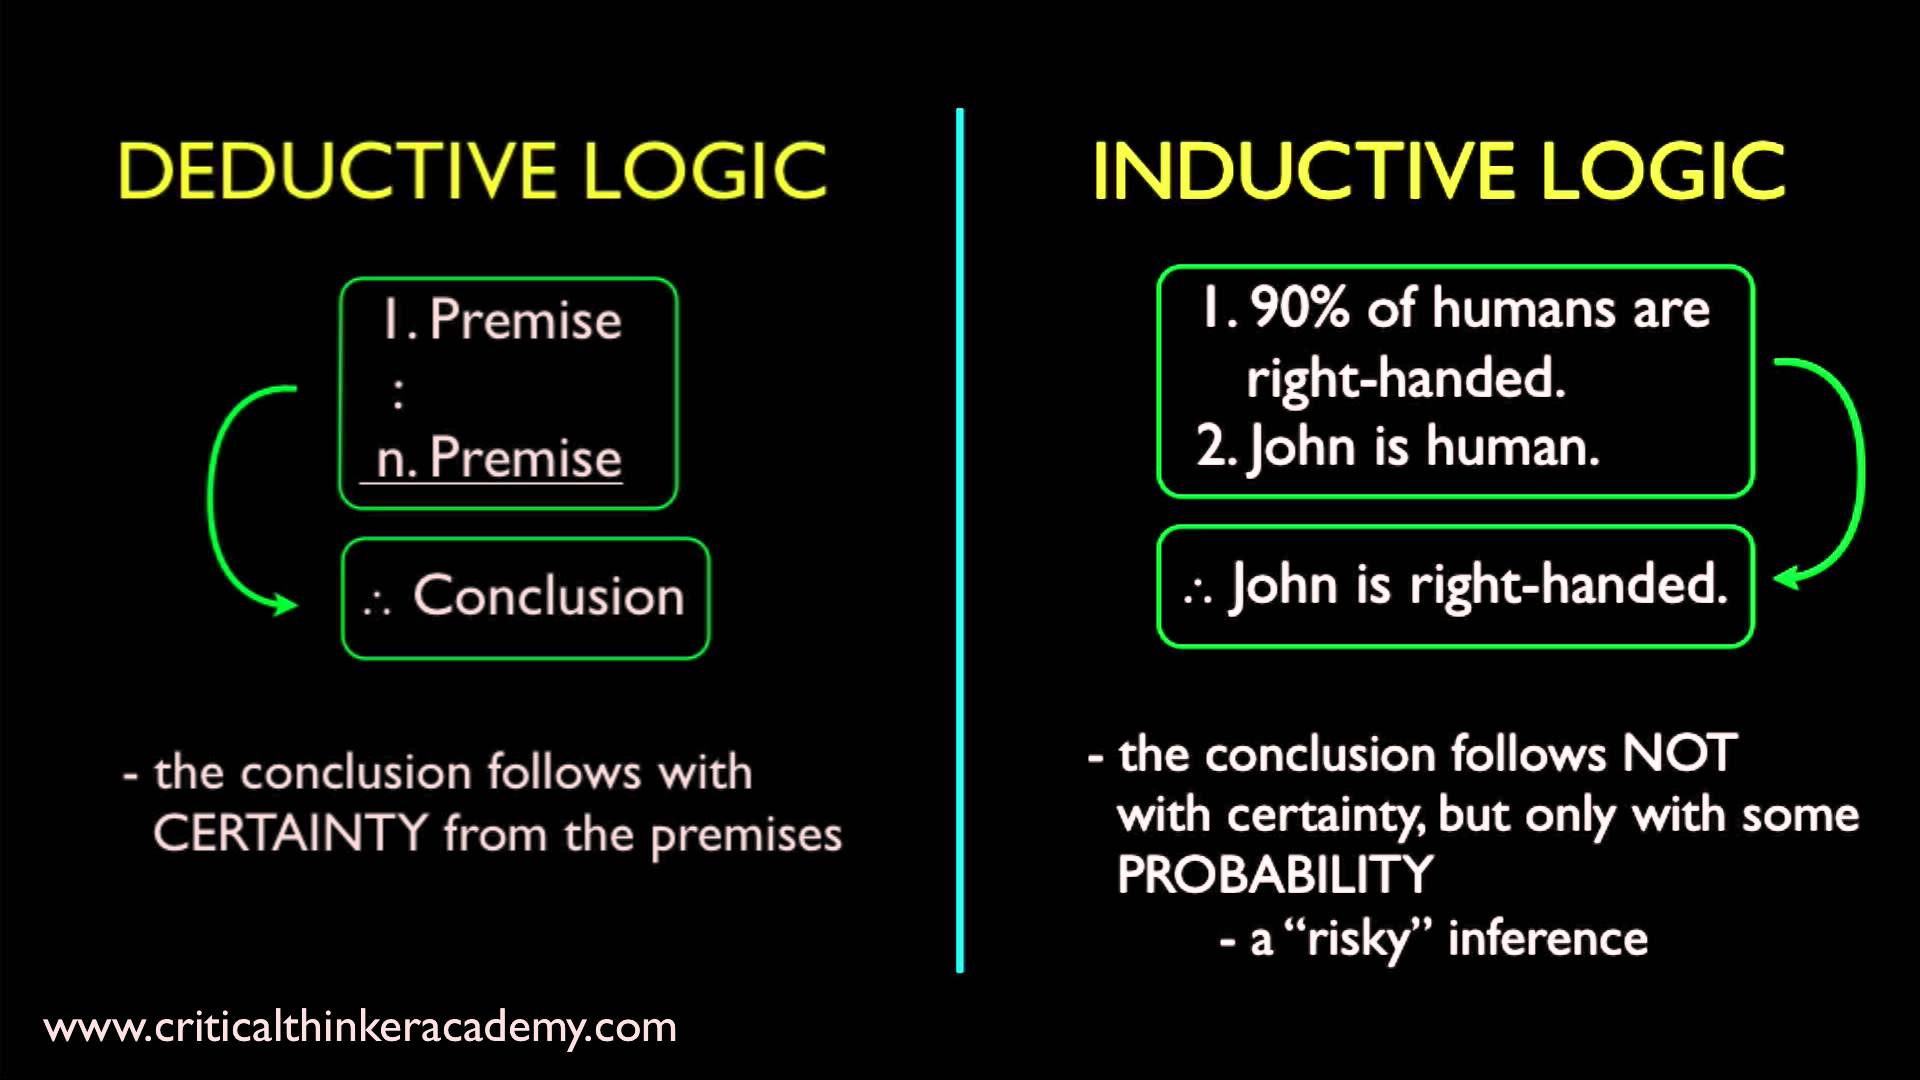 a basic form of deductive Deductive reasoning involves starting out with a theory or general statement, then moving towards a specific conclusion inductive reasoning, on the other .